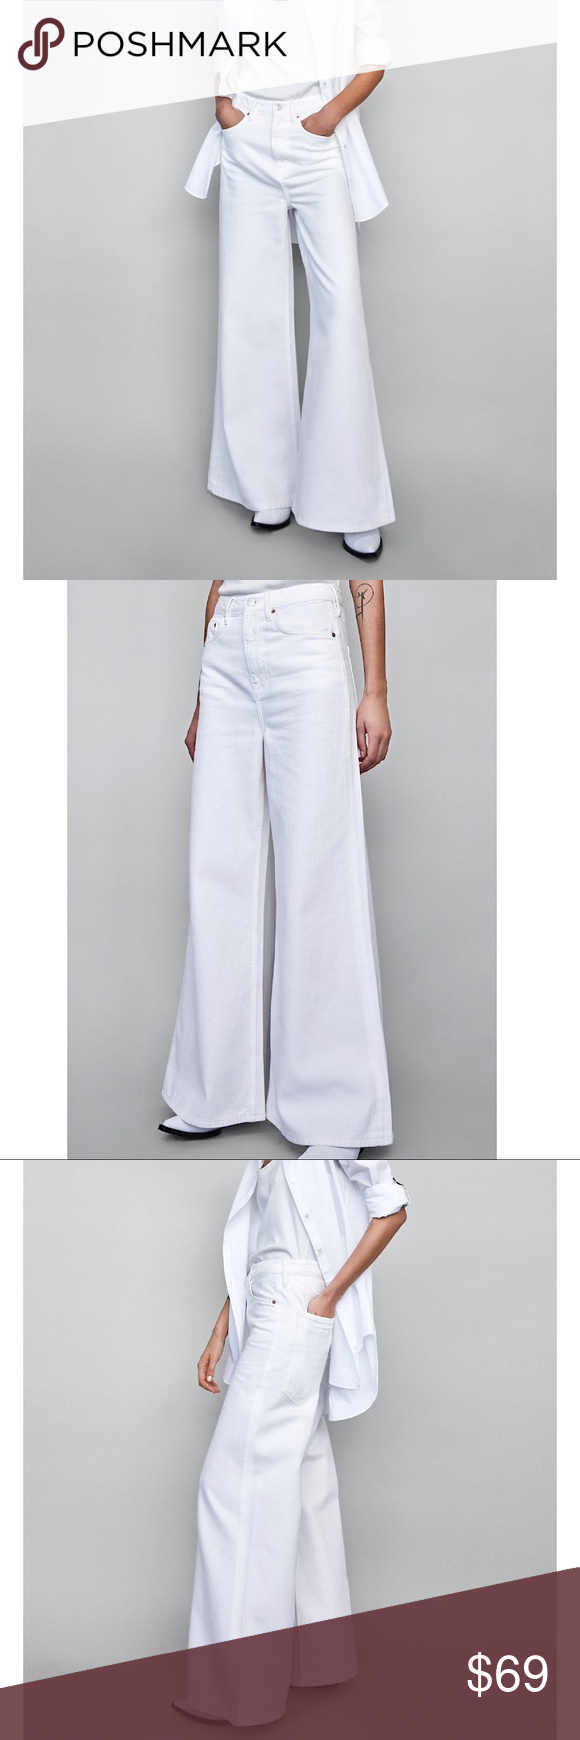 feb10cf0 ZARA Vintage High-Waisted Flared Jeans Features five pockets and ...